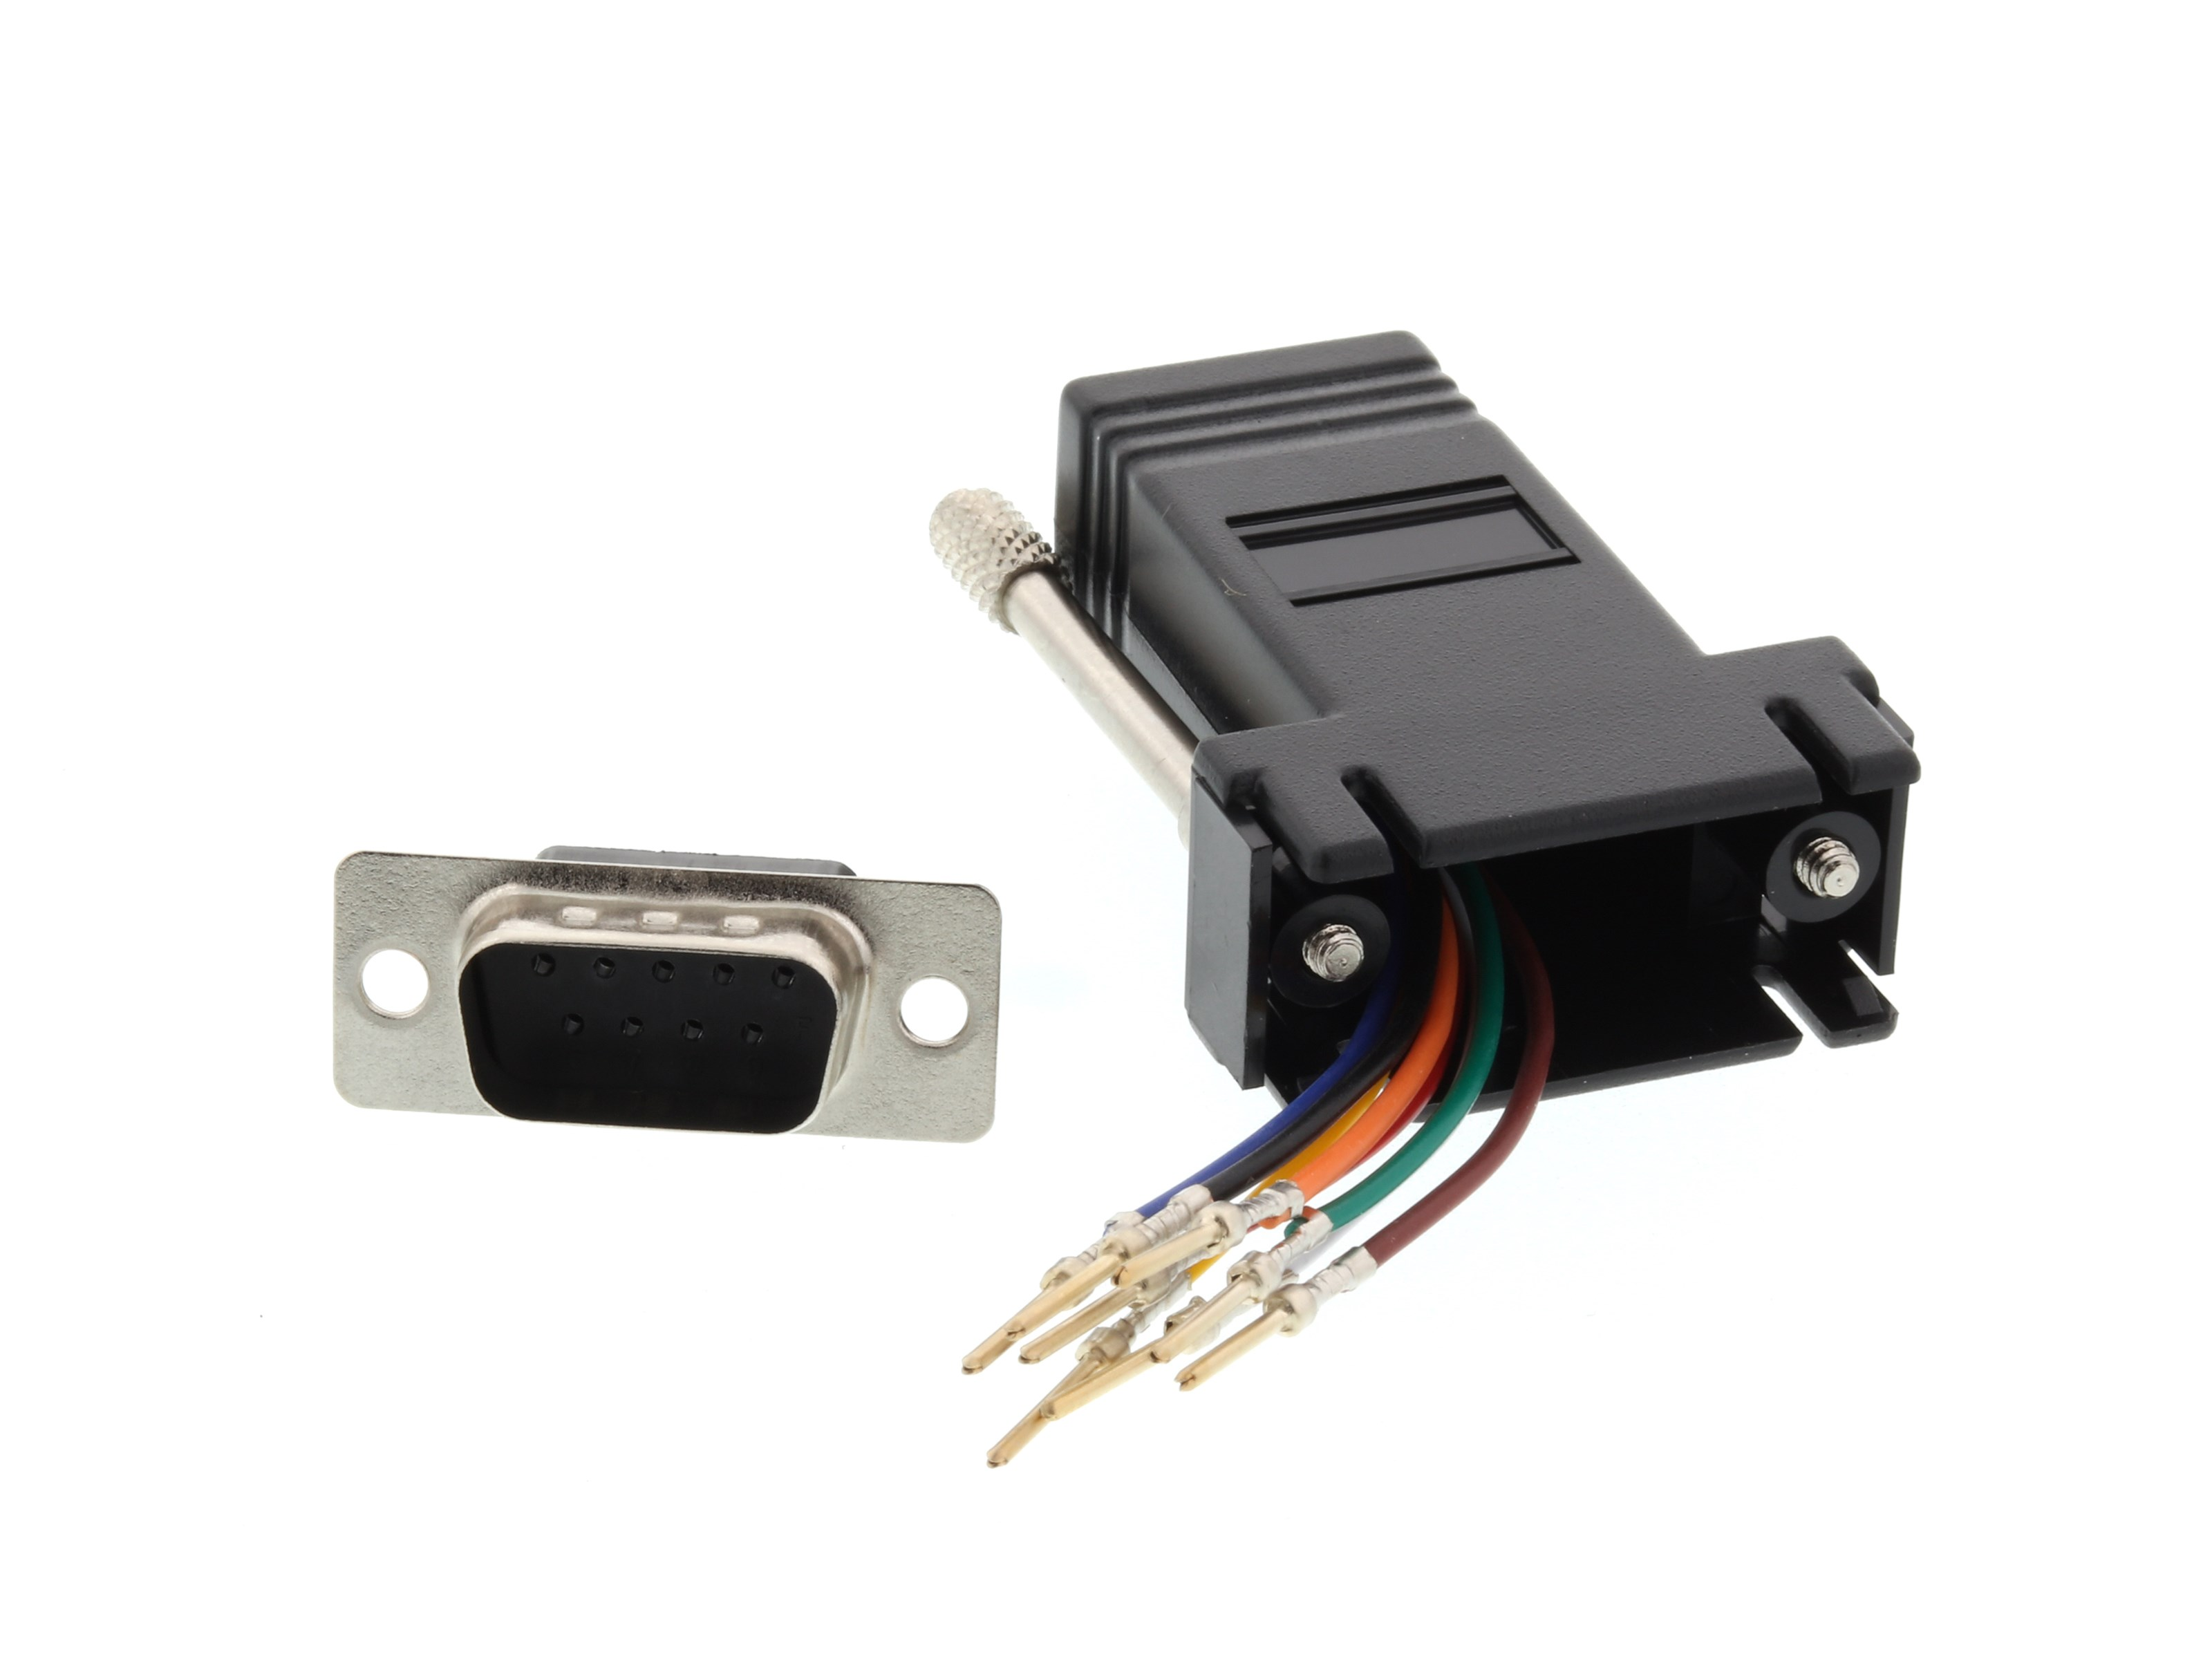 Rj45 Wiring On Serial To Rj 45 Adapters